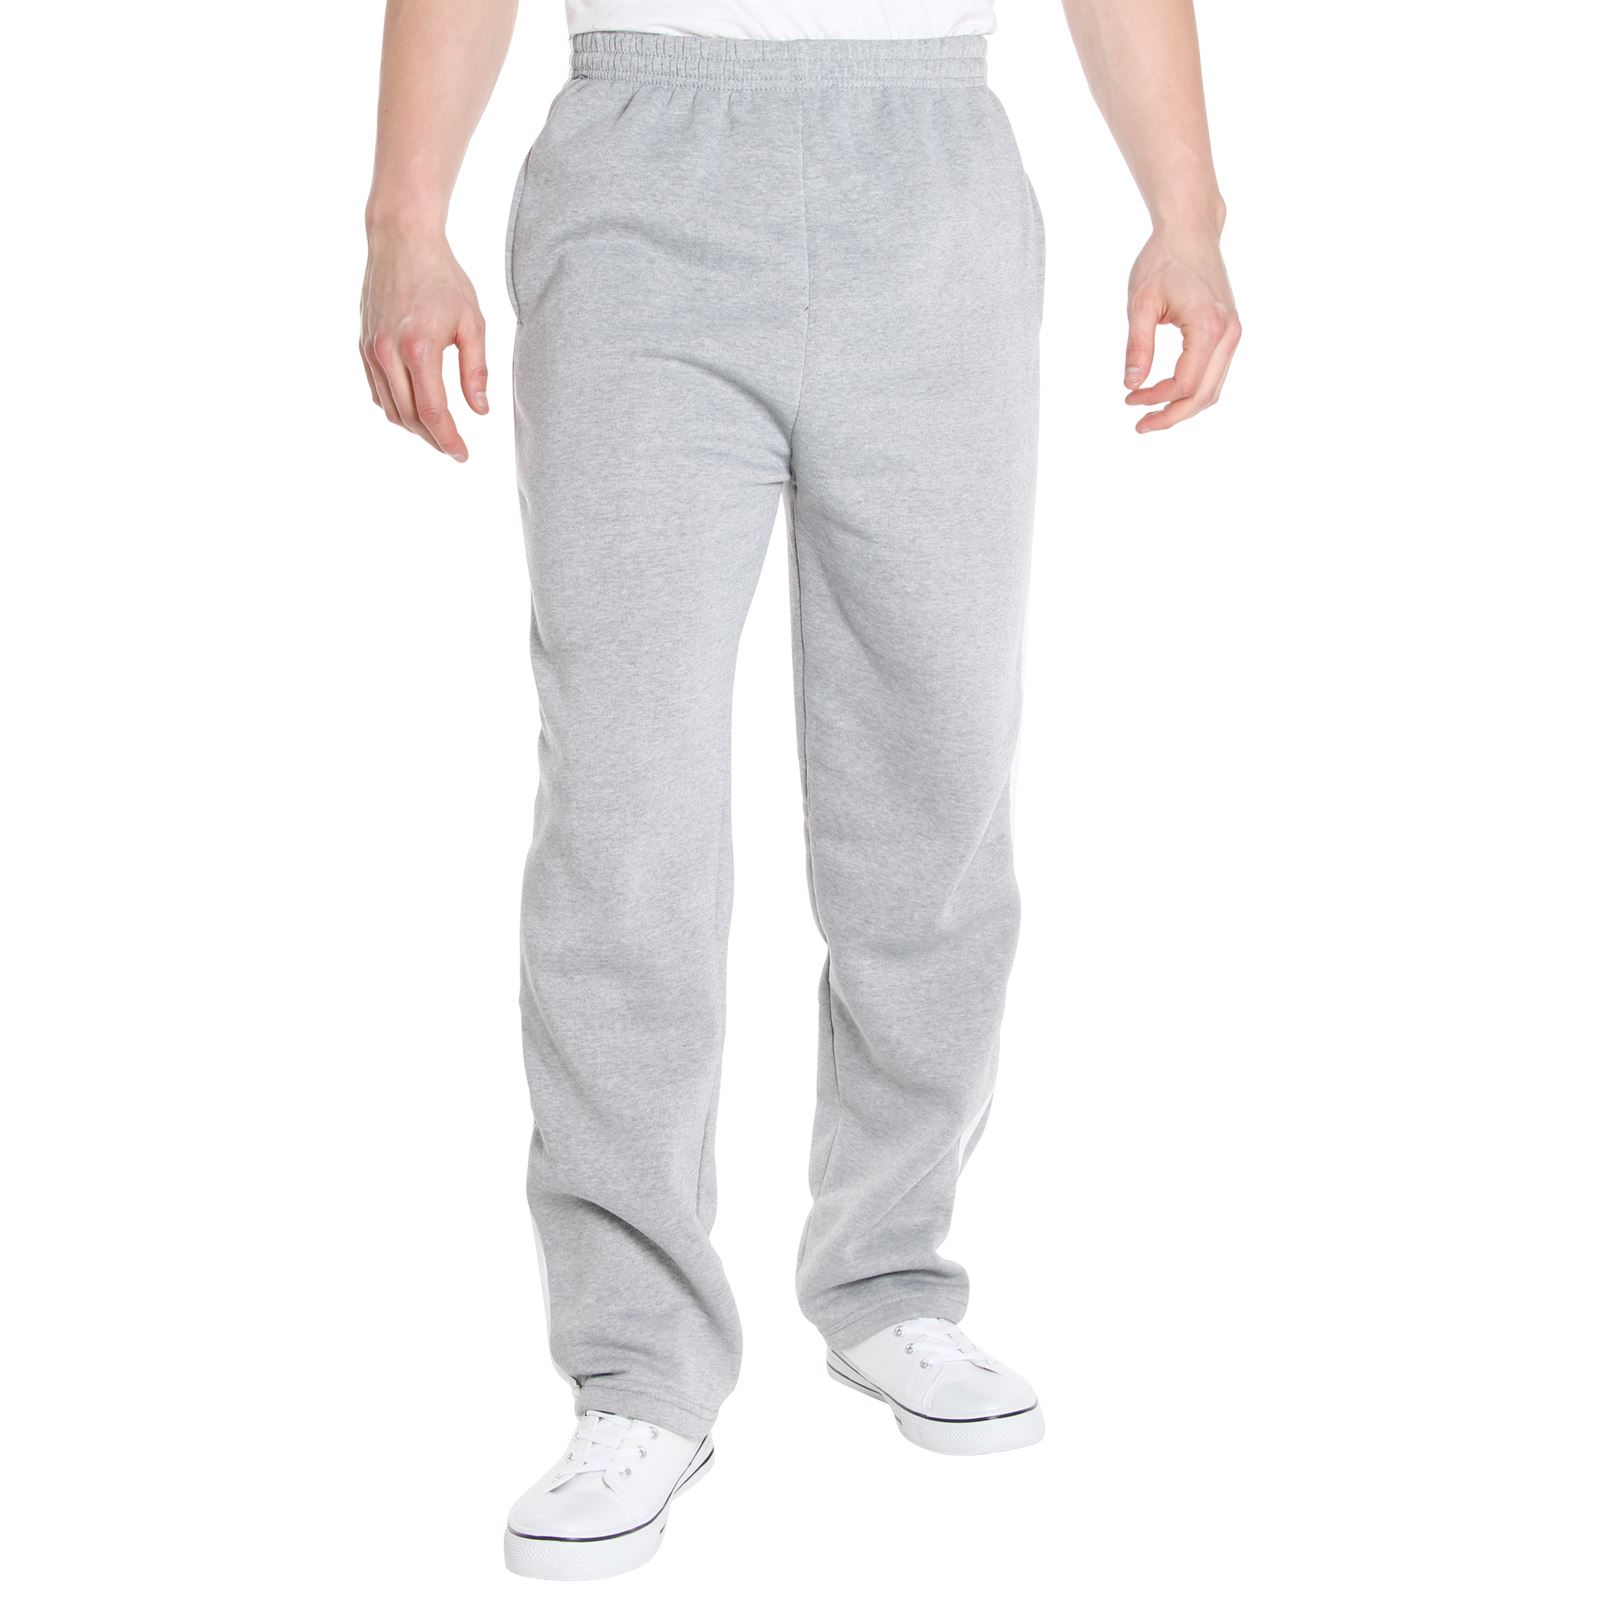 herren hose fleece sport training fitness jogging hosen sweat pants ebay. Black Bedroom Furniture Sets. Home Design Ideas